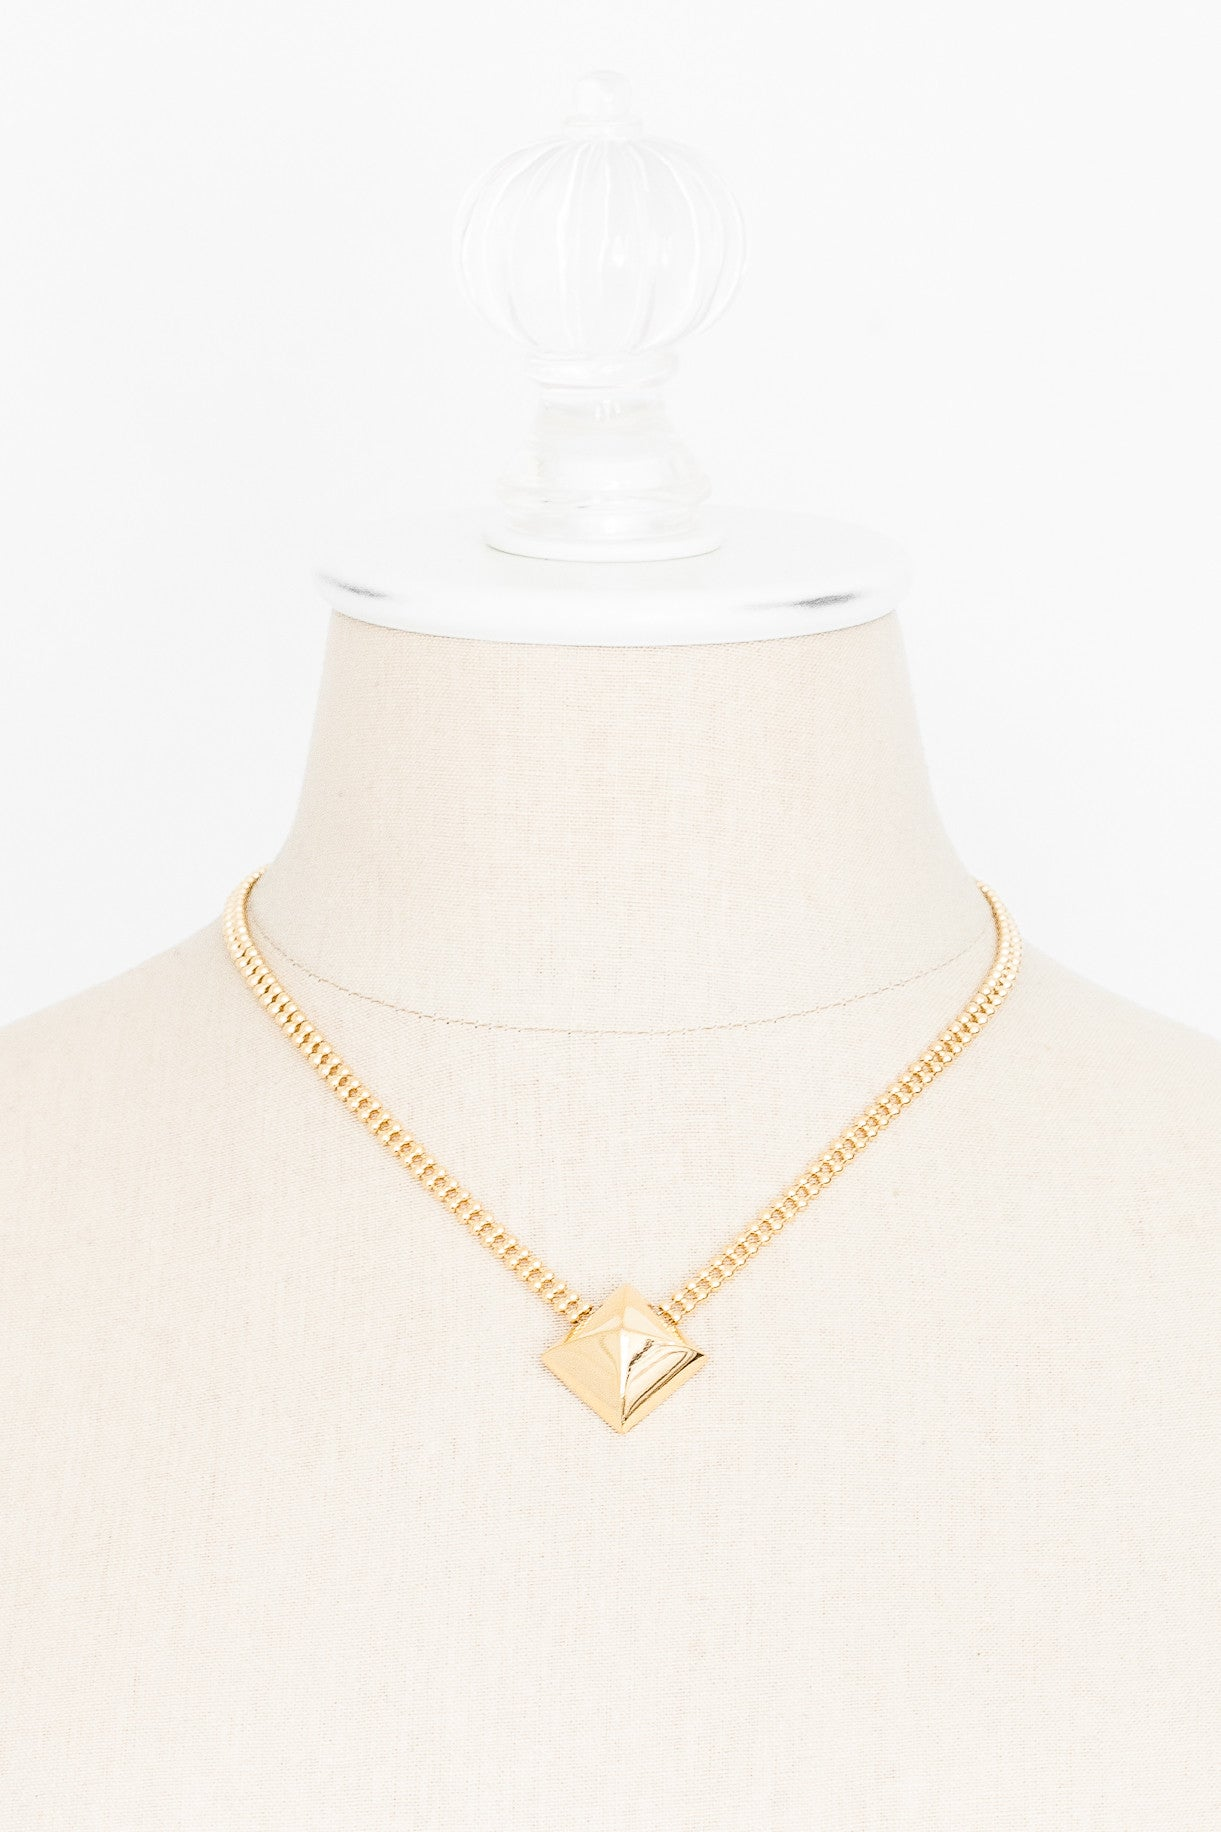 80's__Napier__Bold Square Necklace